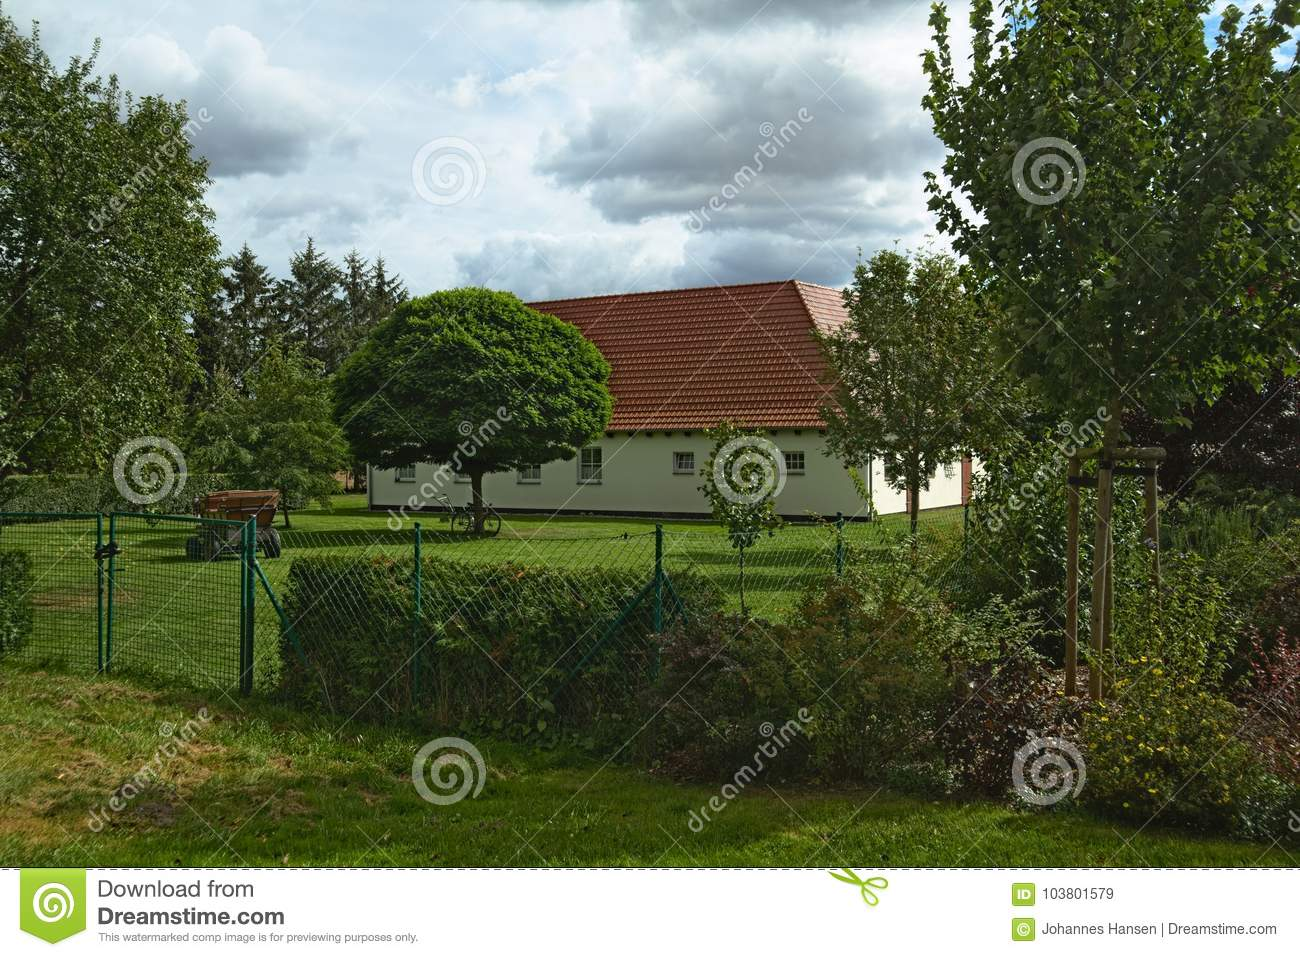 House listed as monuments in Kirchdorf, Mecklenburg-Vorpommern, Germany